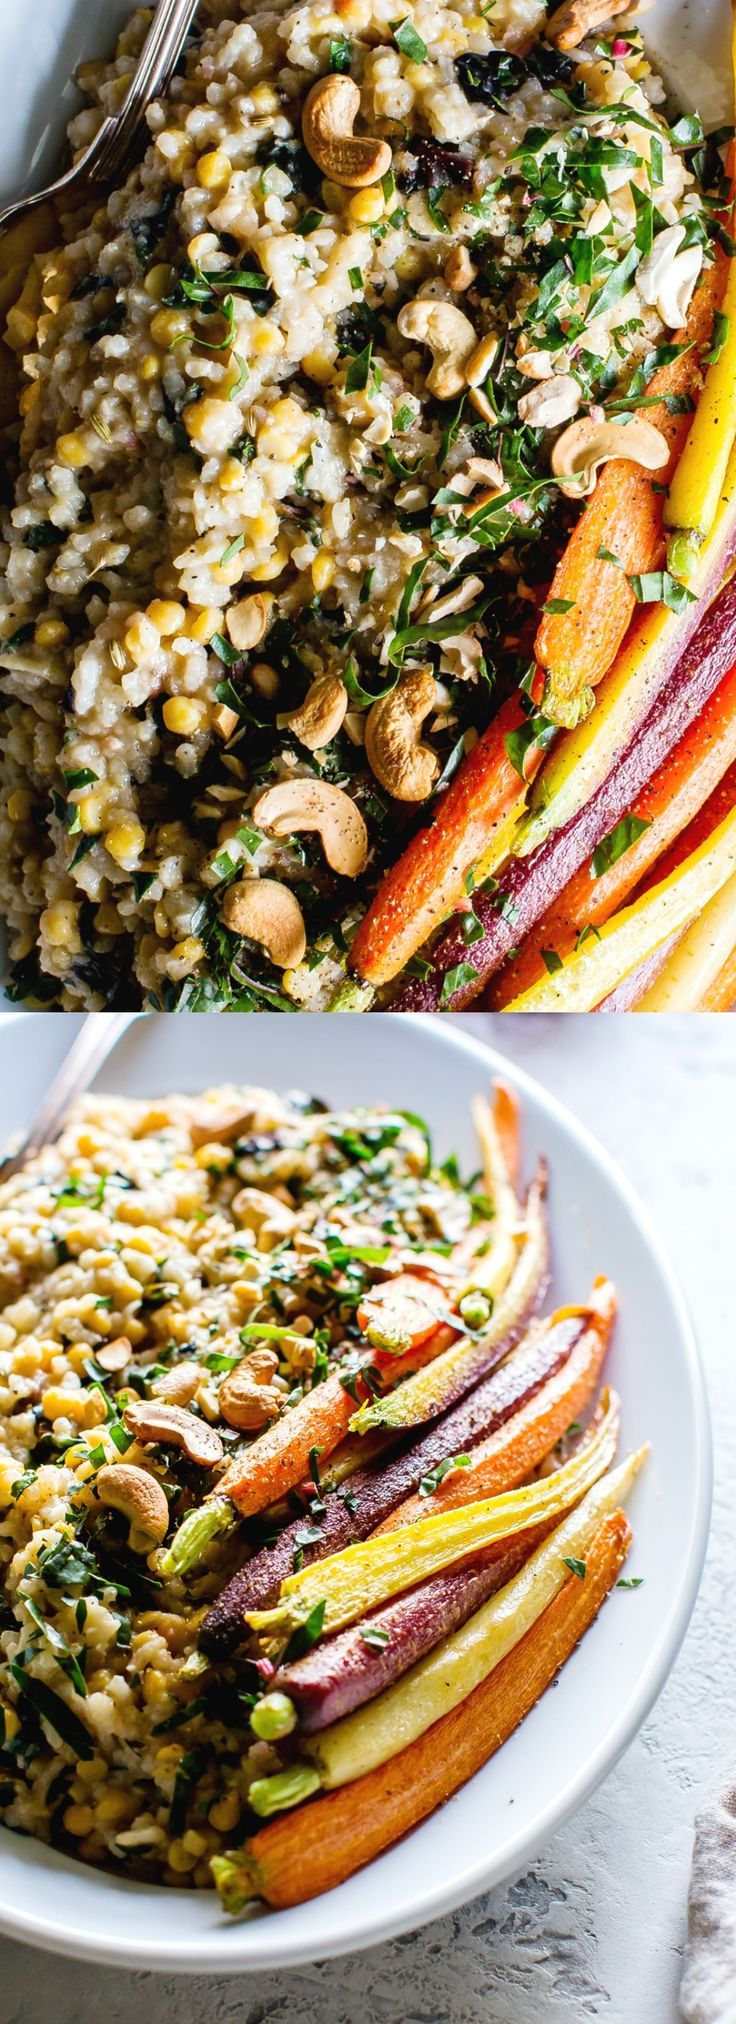 Lentil Risotto with Rainbow Chard and Crispy Carrots is a creamy, flavor packed main. With an easy risotto method, dinner is ready in about 45 minutes. #vegetarian #vegetarianrecipes #veganfood #veganrecipes